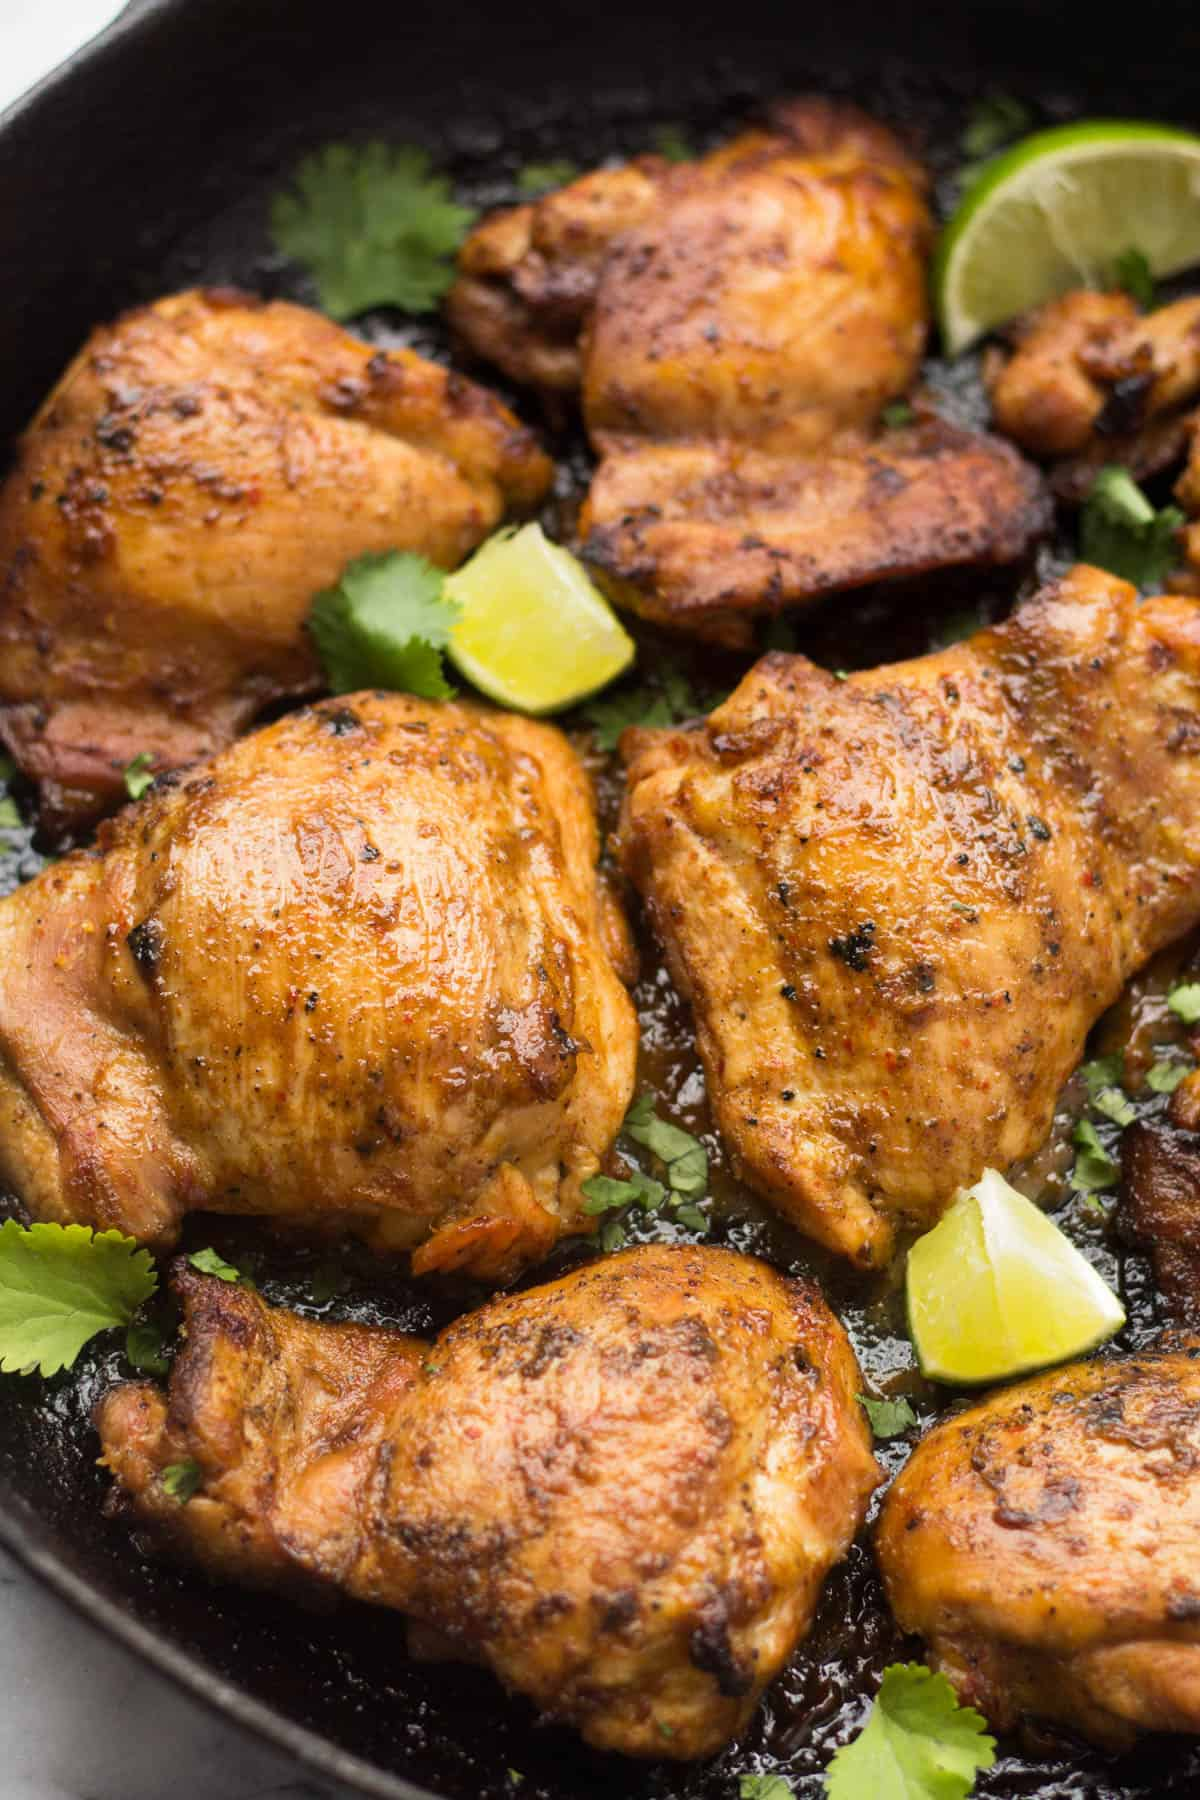 An easy and flavorful protein, these Ginger Lime Chicken Thighs will make the perfect accompaniment to any meal - gluten free, dairy free, paleo, & Whole30 approved! - Eat the Gains